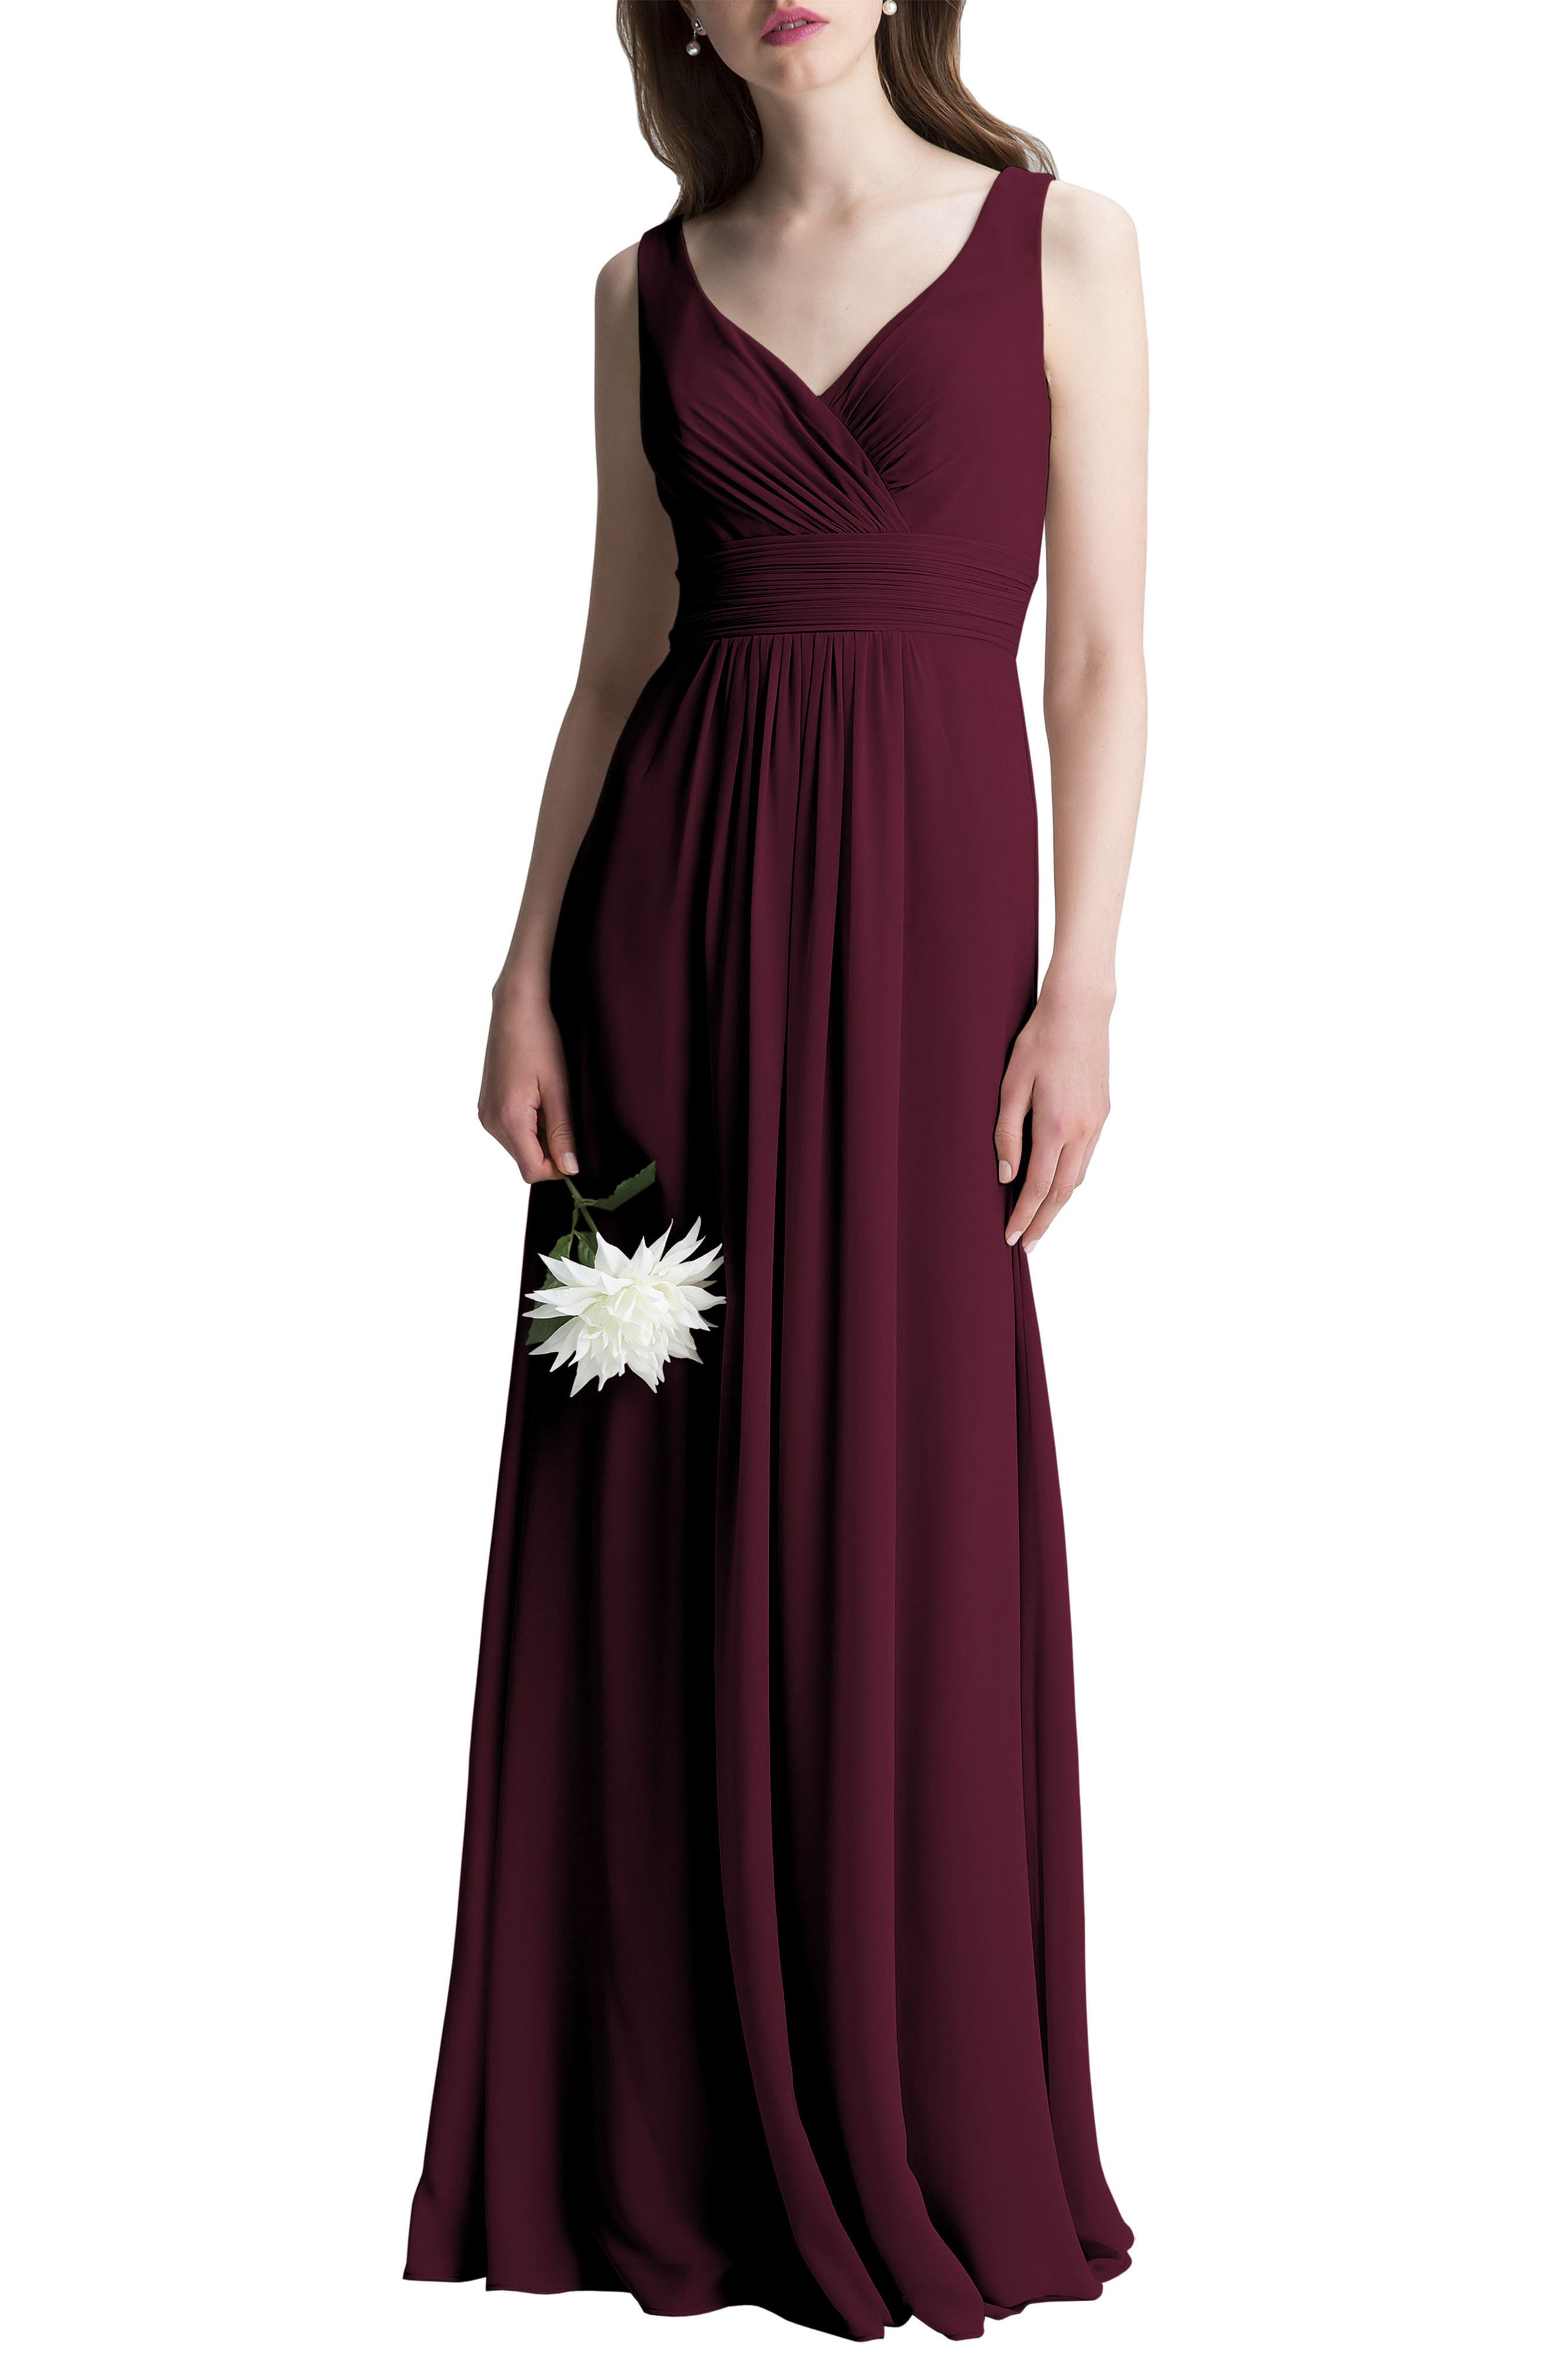 This dreamy chiffon gown is incredibly flattering from all angles thanks to its softly gathered surplice neckline, plunging V-back and ruched waist. The gathered A-line skirt flows to the floor for a romantic finish. Style Name:#levkoff V-Neck Chiffon A-Line Gown. Style Number: 5342446 1. Available in stores.